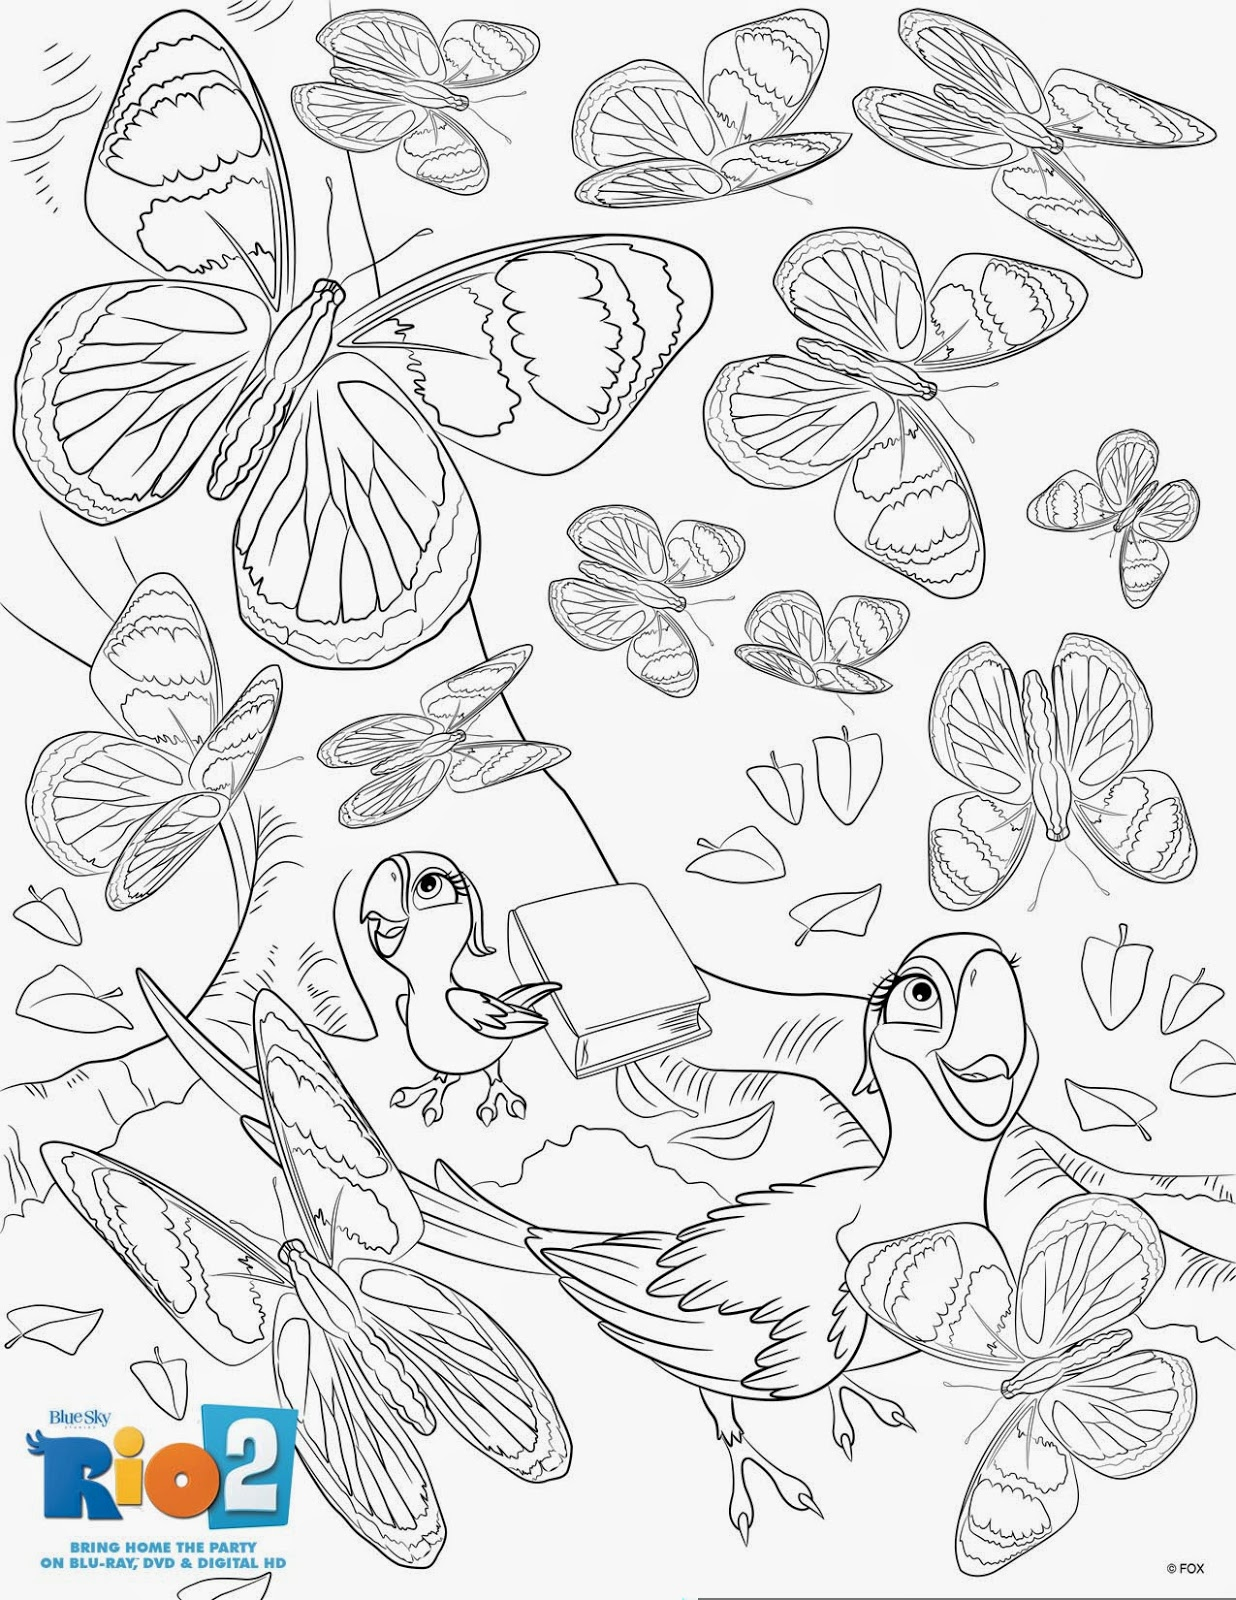 Heck Of A Bunch Rio 2 Activity And Coloring Sheets